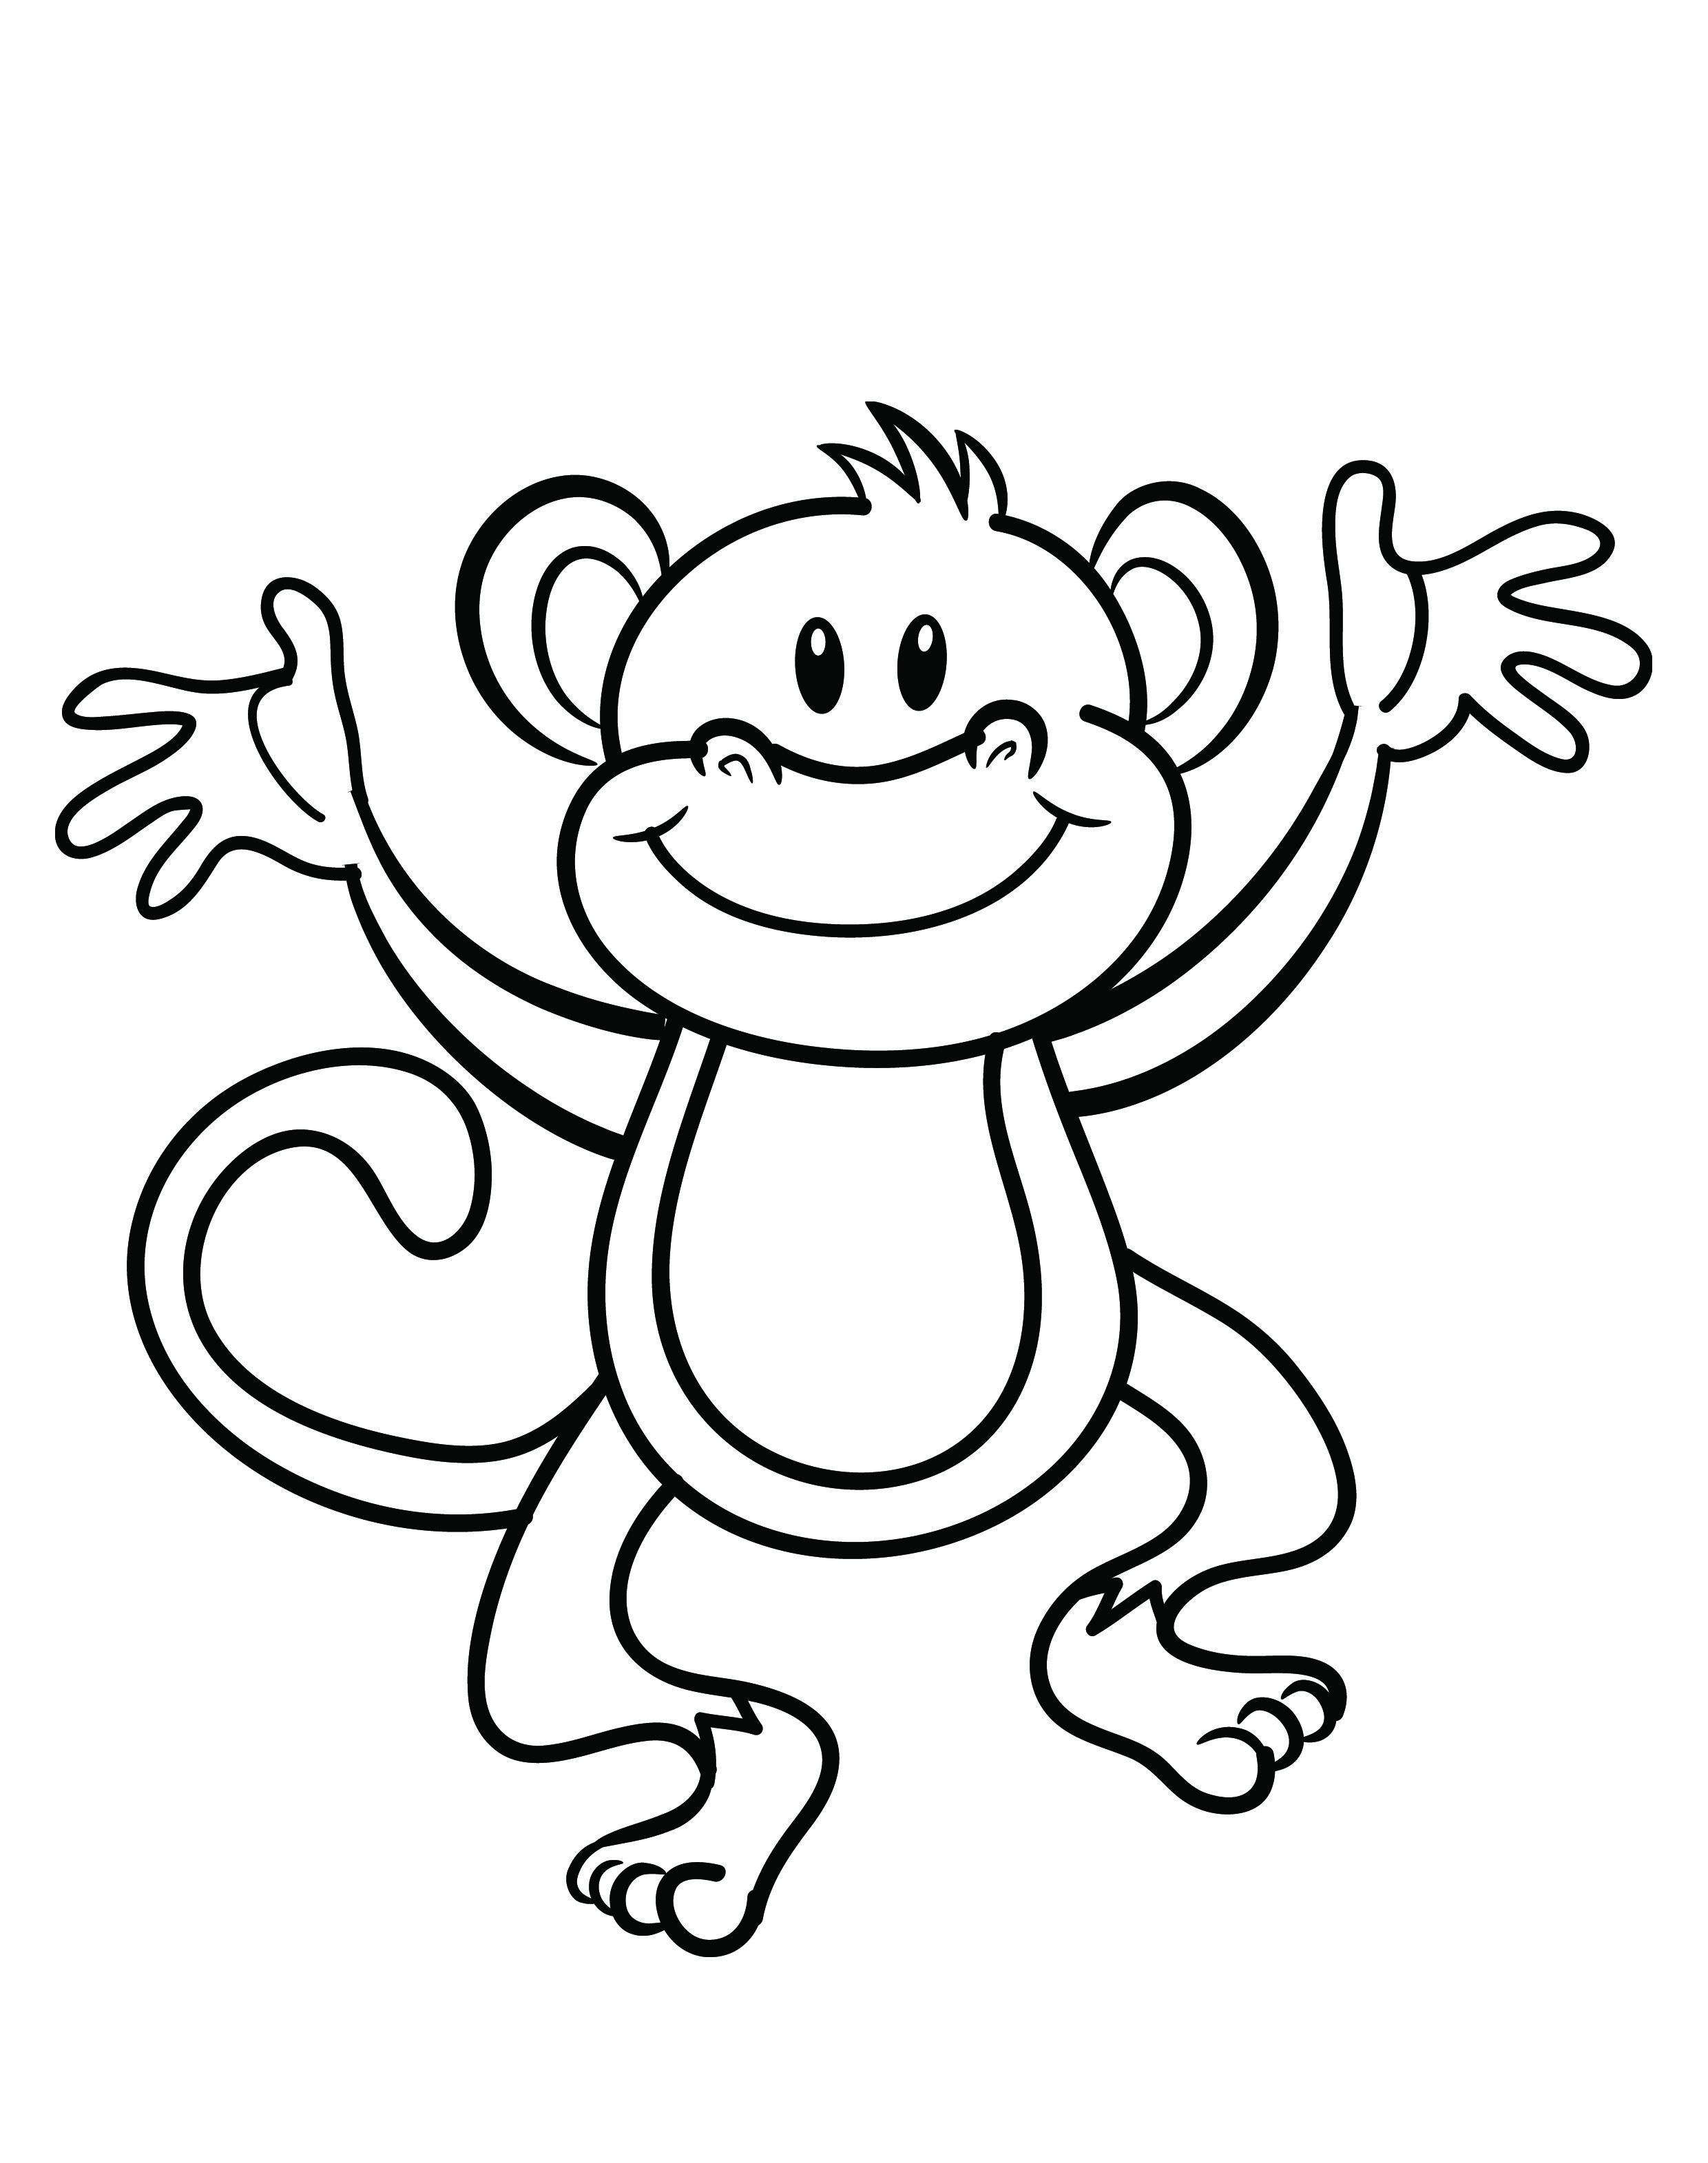 Free Printable Monkey Coloring Page | Cj 1St Birthday | Monkey - Free Printable Monkey Coloring Sheets